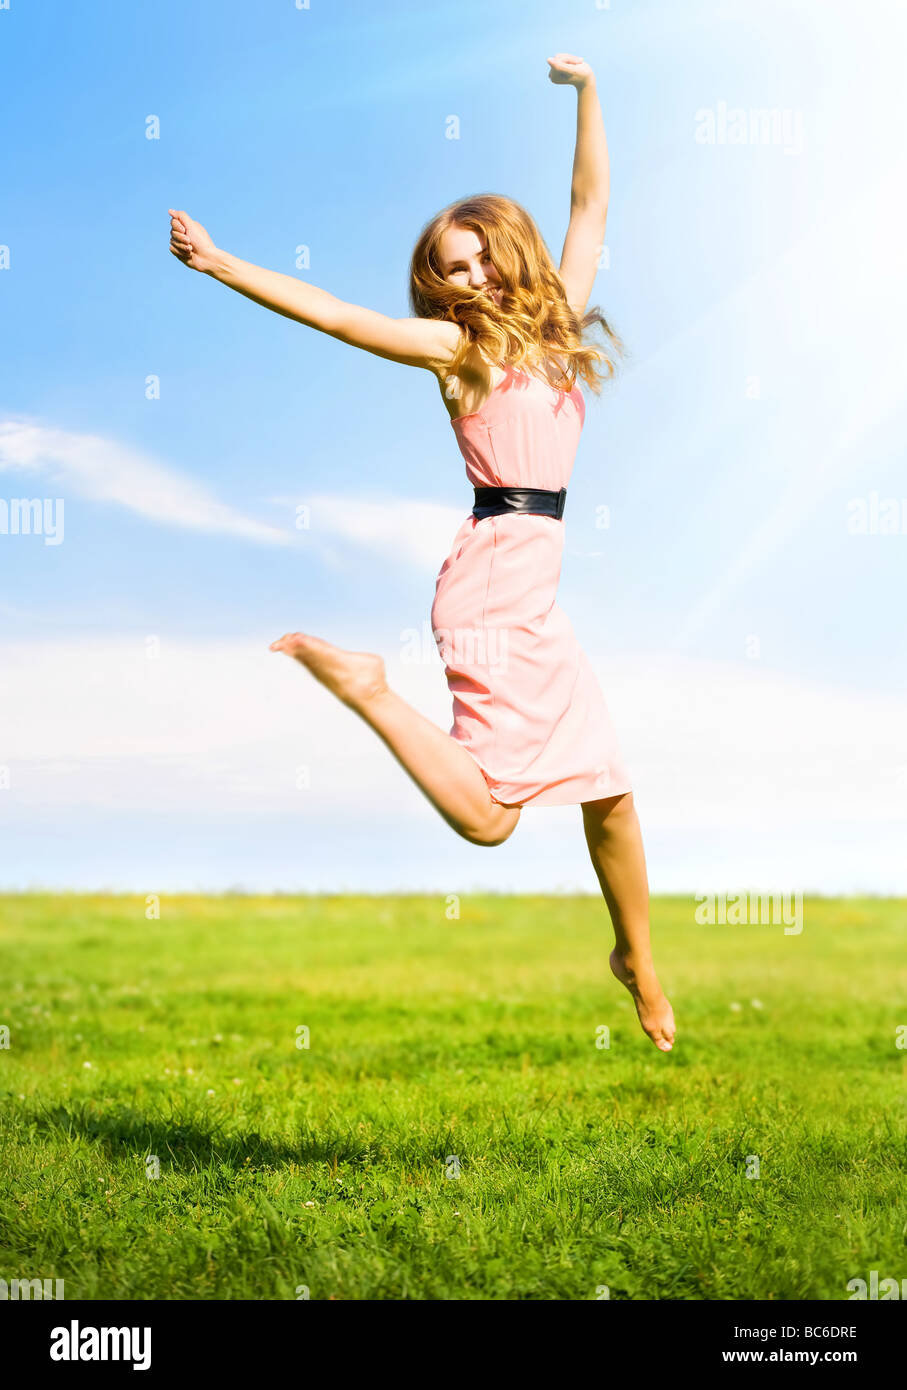 Happy jumping girl on summer field background - Stock Image